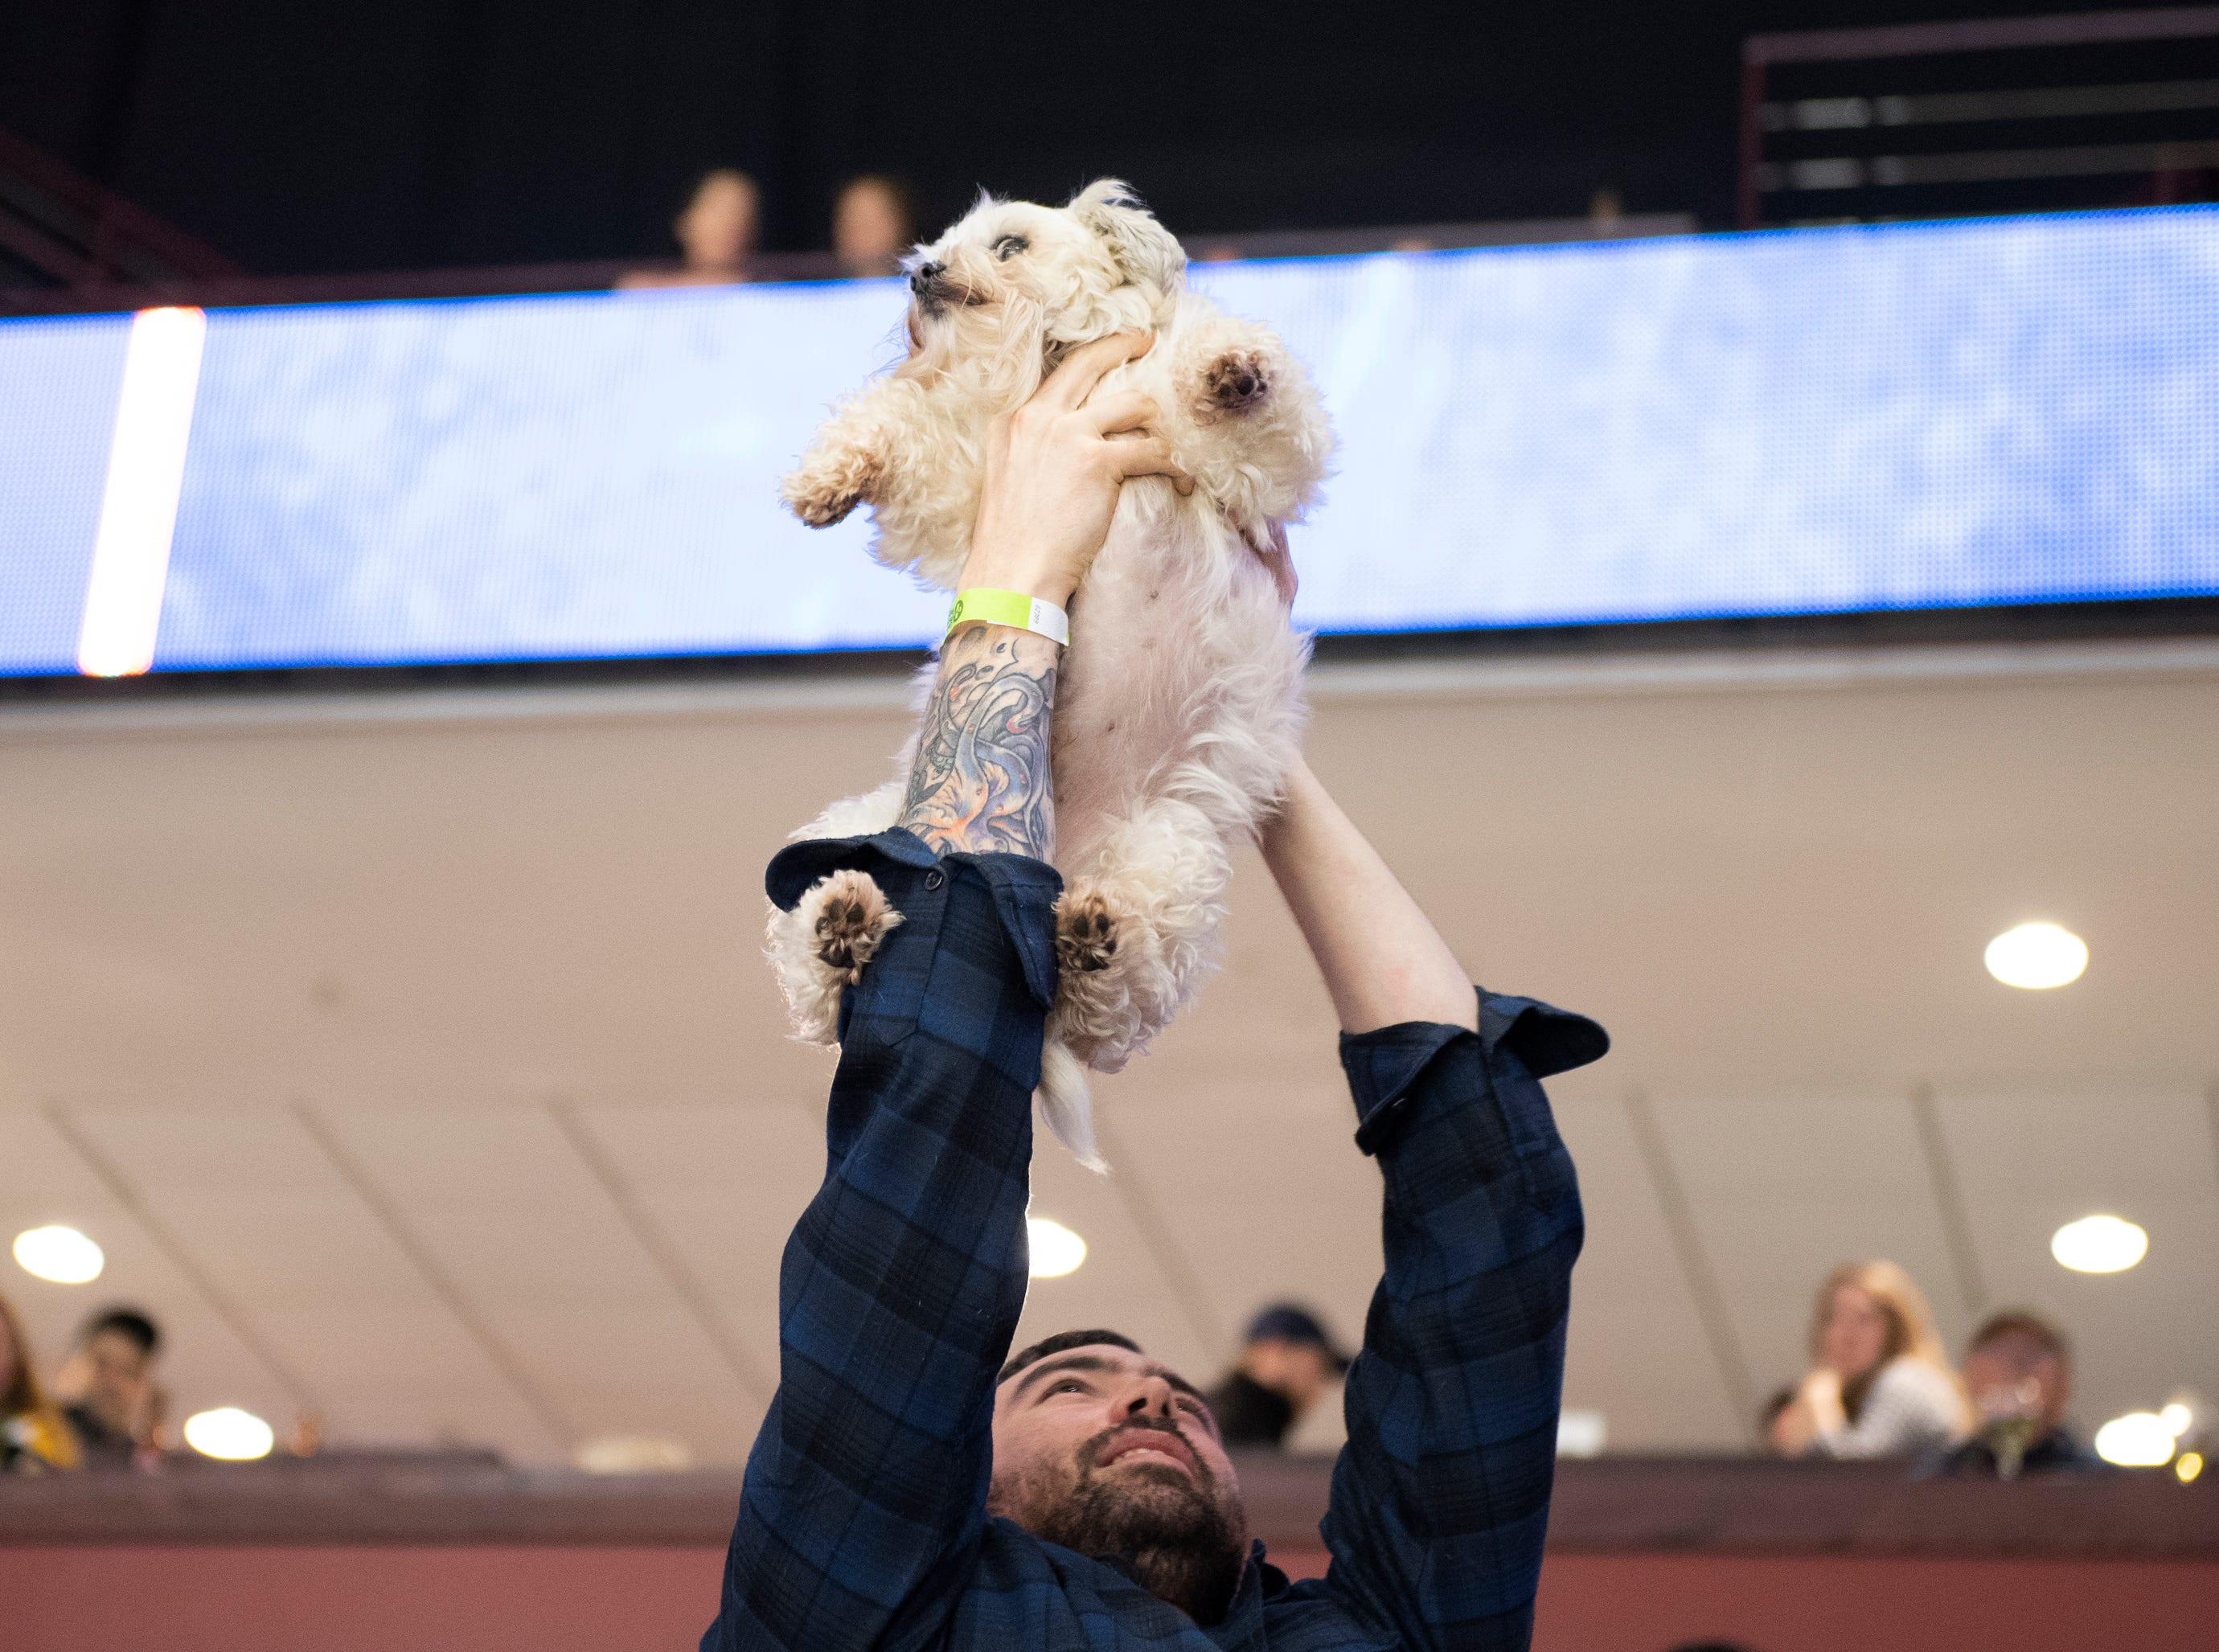 Tyler Bryant holds up his dog Beast during the Greenville Swamp Rabbits game against the Florida Everblades Saturday, Feb. 2, 2019. Saturday was Pucks N' Paws night at Bon Secours Wellness Arena.